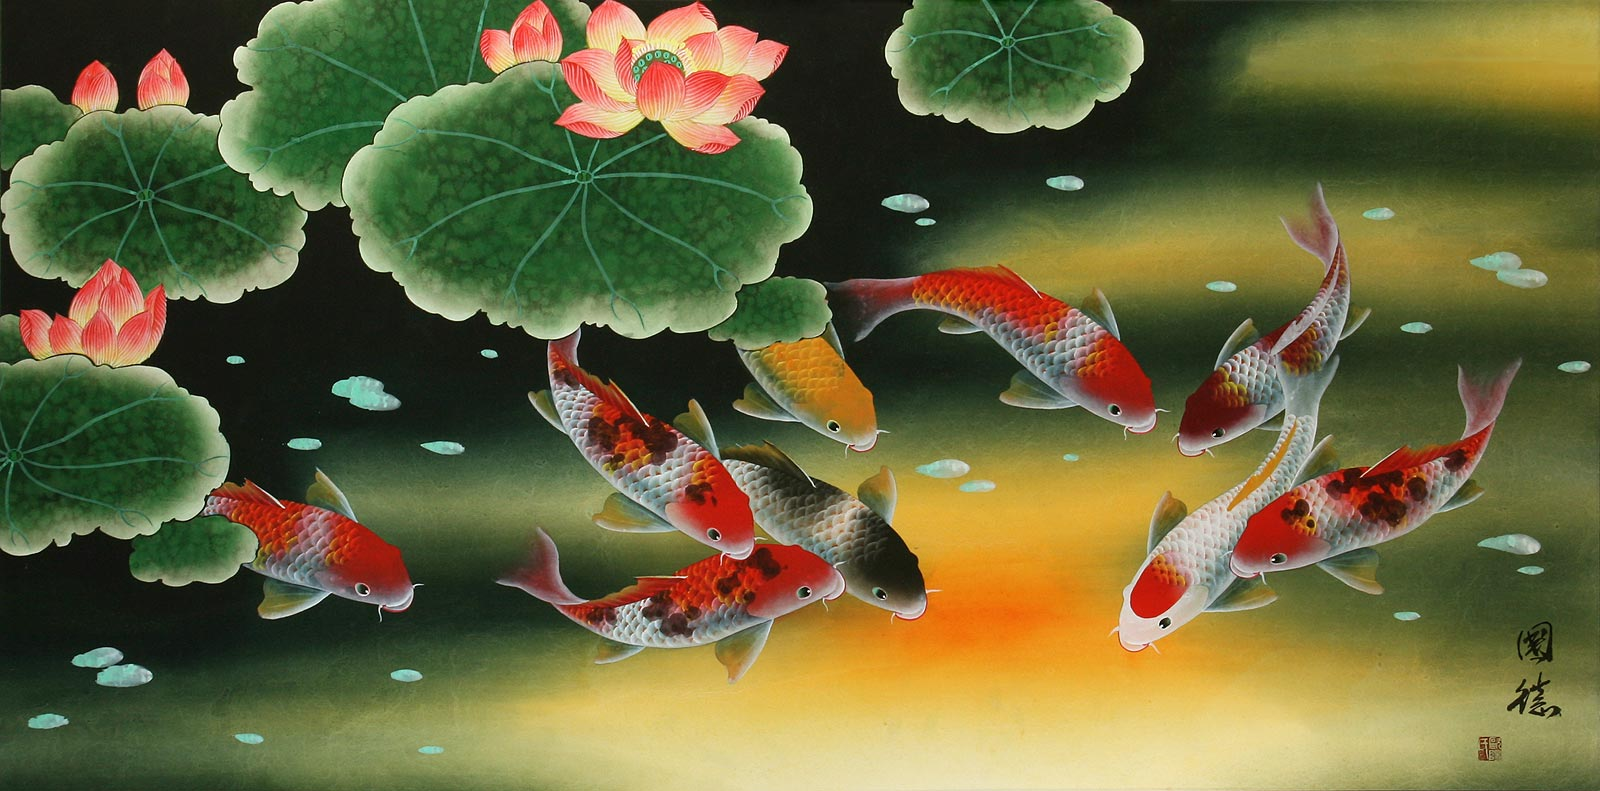 Huge koi fish and lily elaborate painting asian koi fish for Chinese koi fish painting